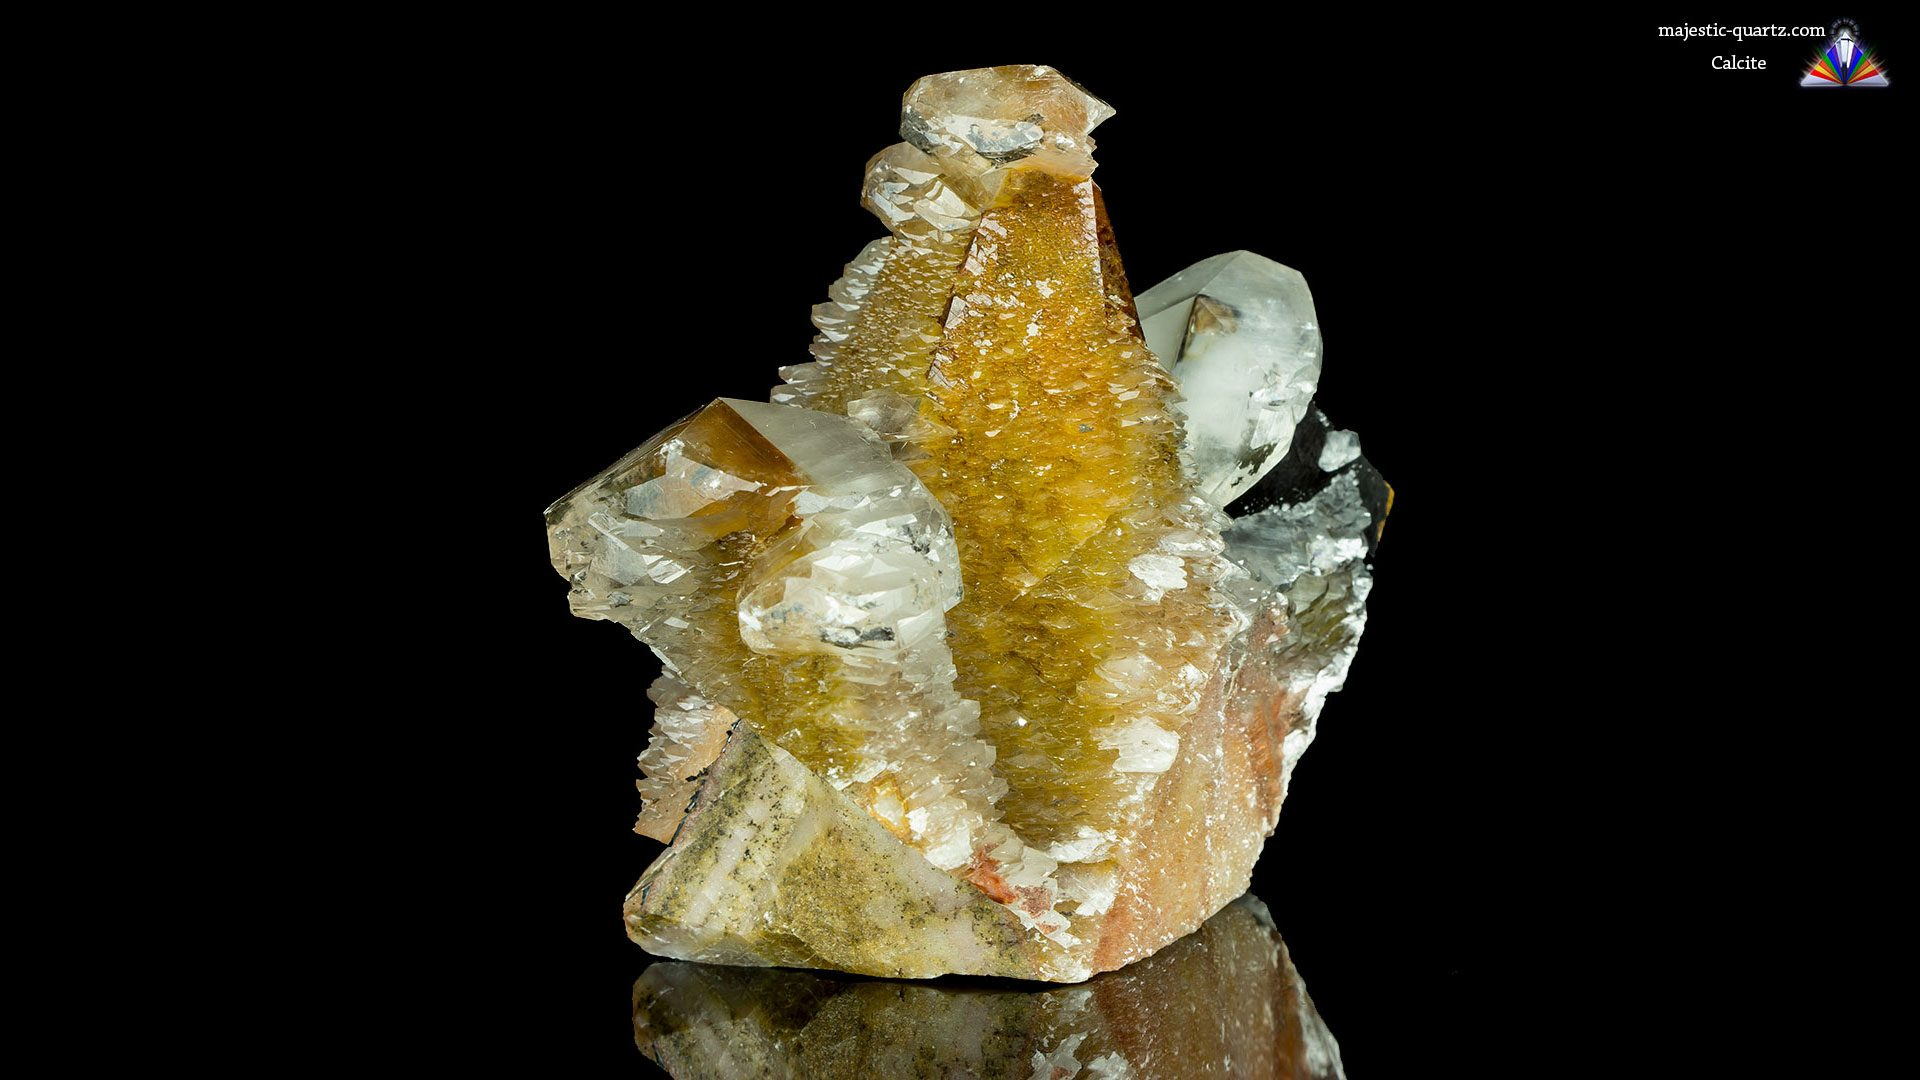 Terminated Calcite Crystal Specimen - Photograph by Anthony Bradford